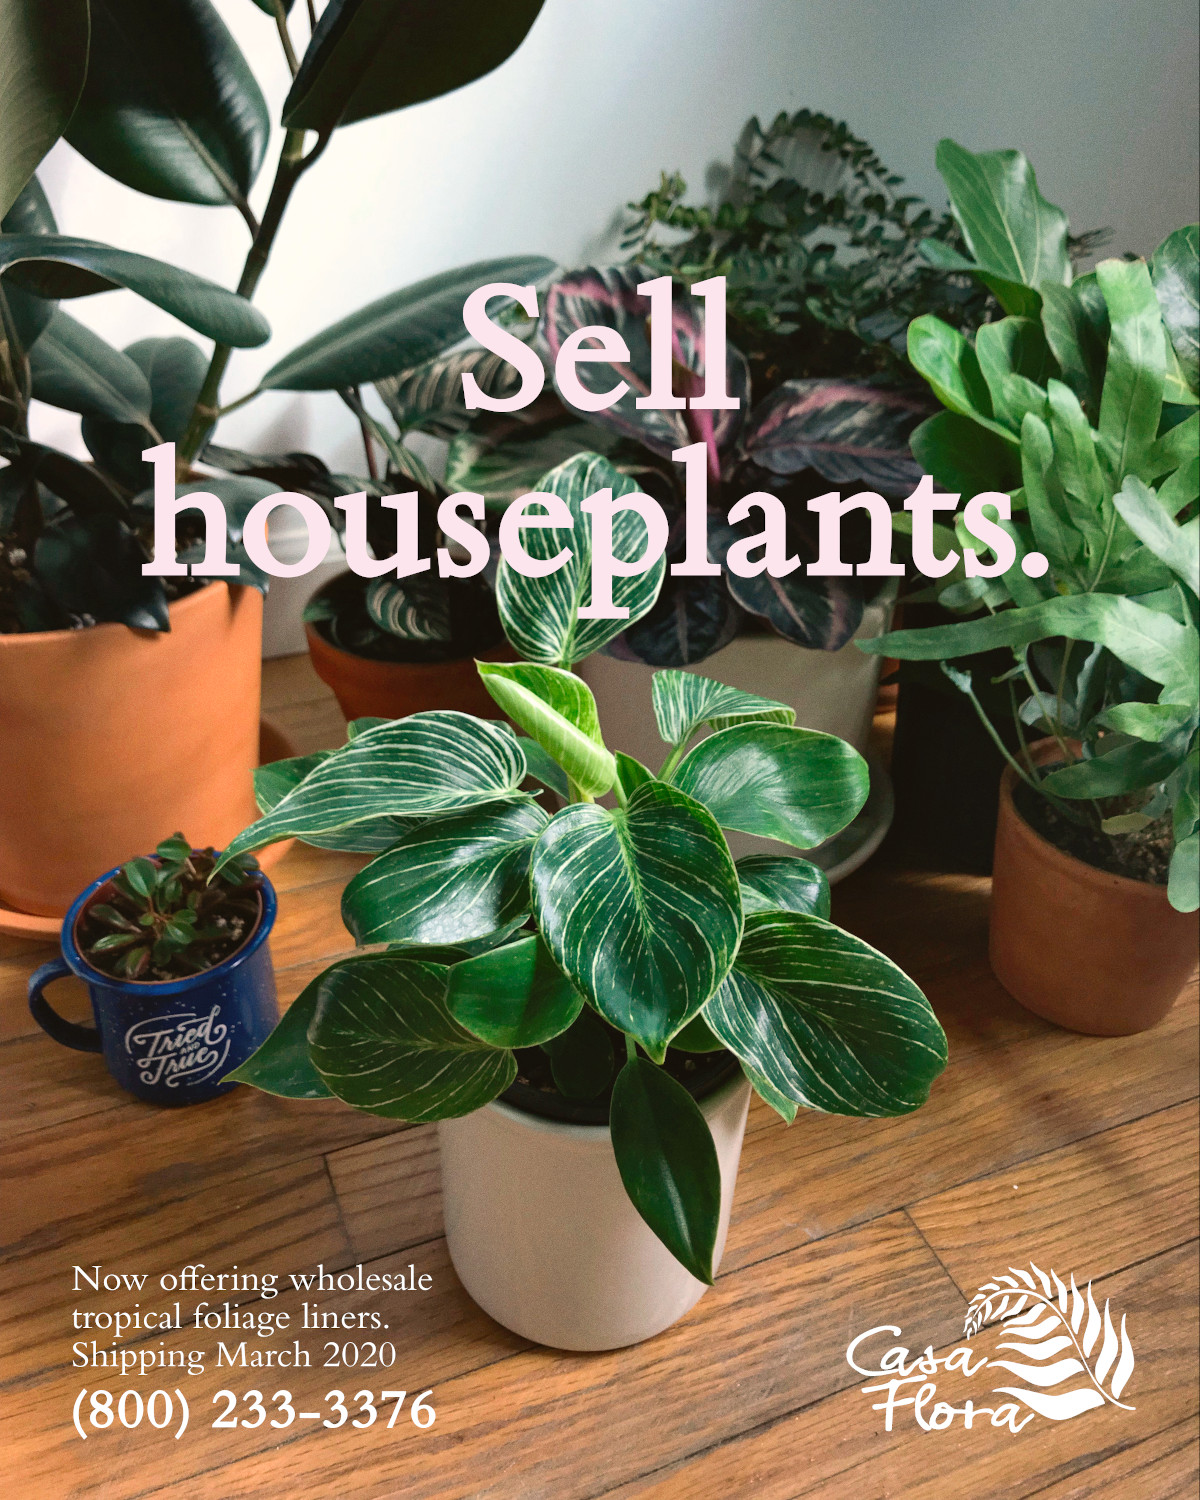 "Casa Flora's ""Sell House Plants"" flyer offering wholesale foliage plants for sale. Call 800-233-3376 to order."